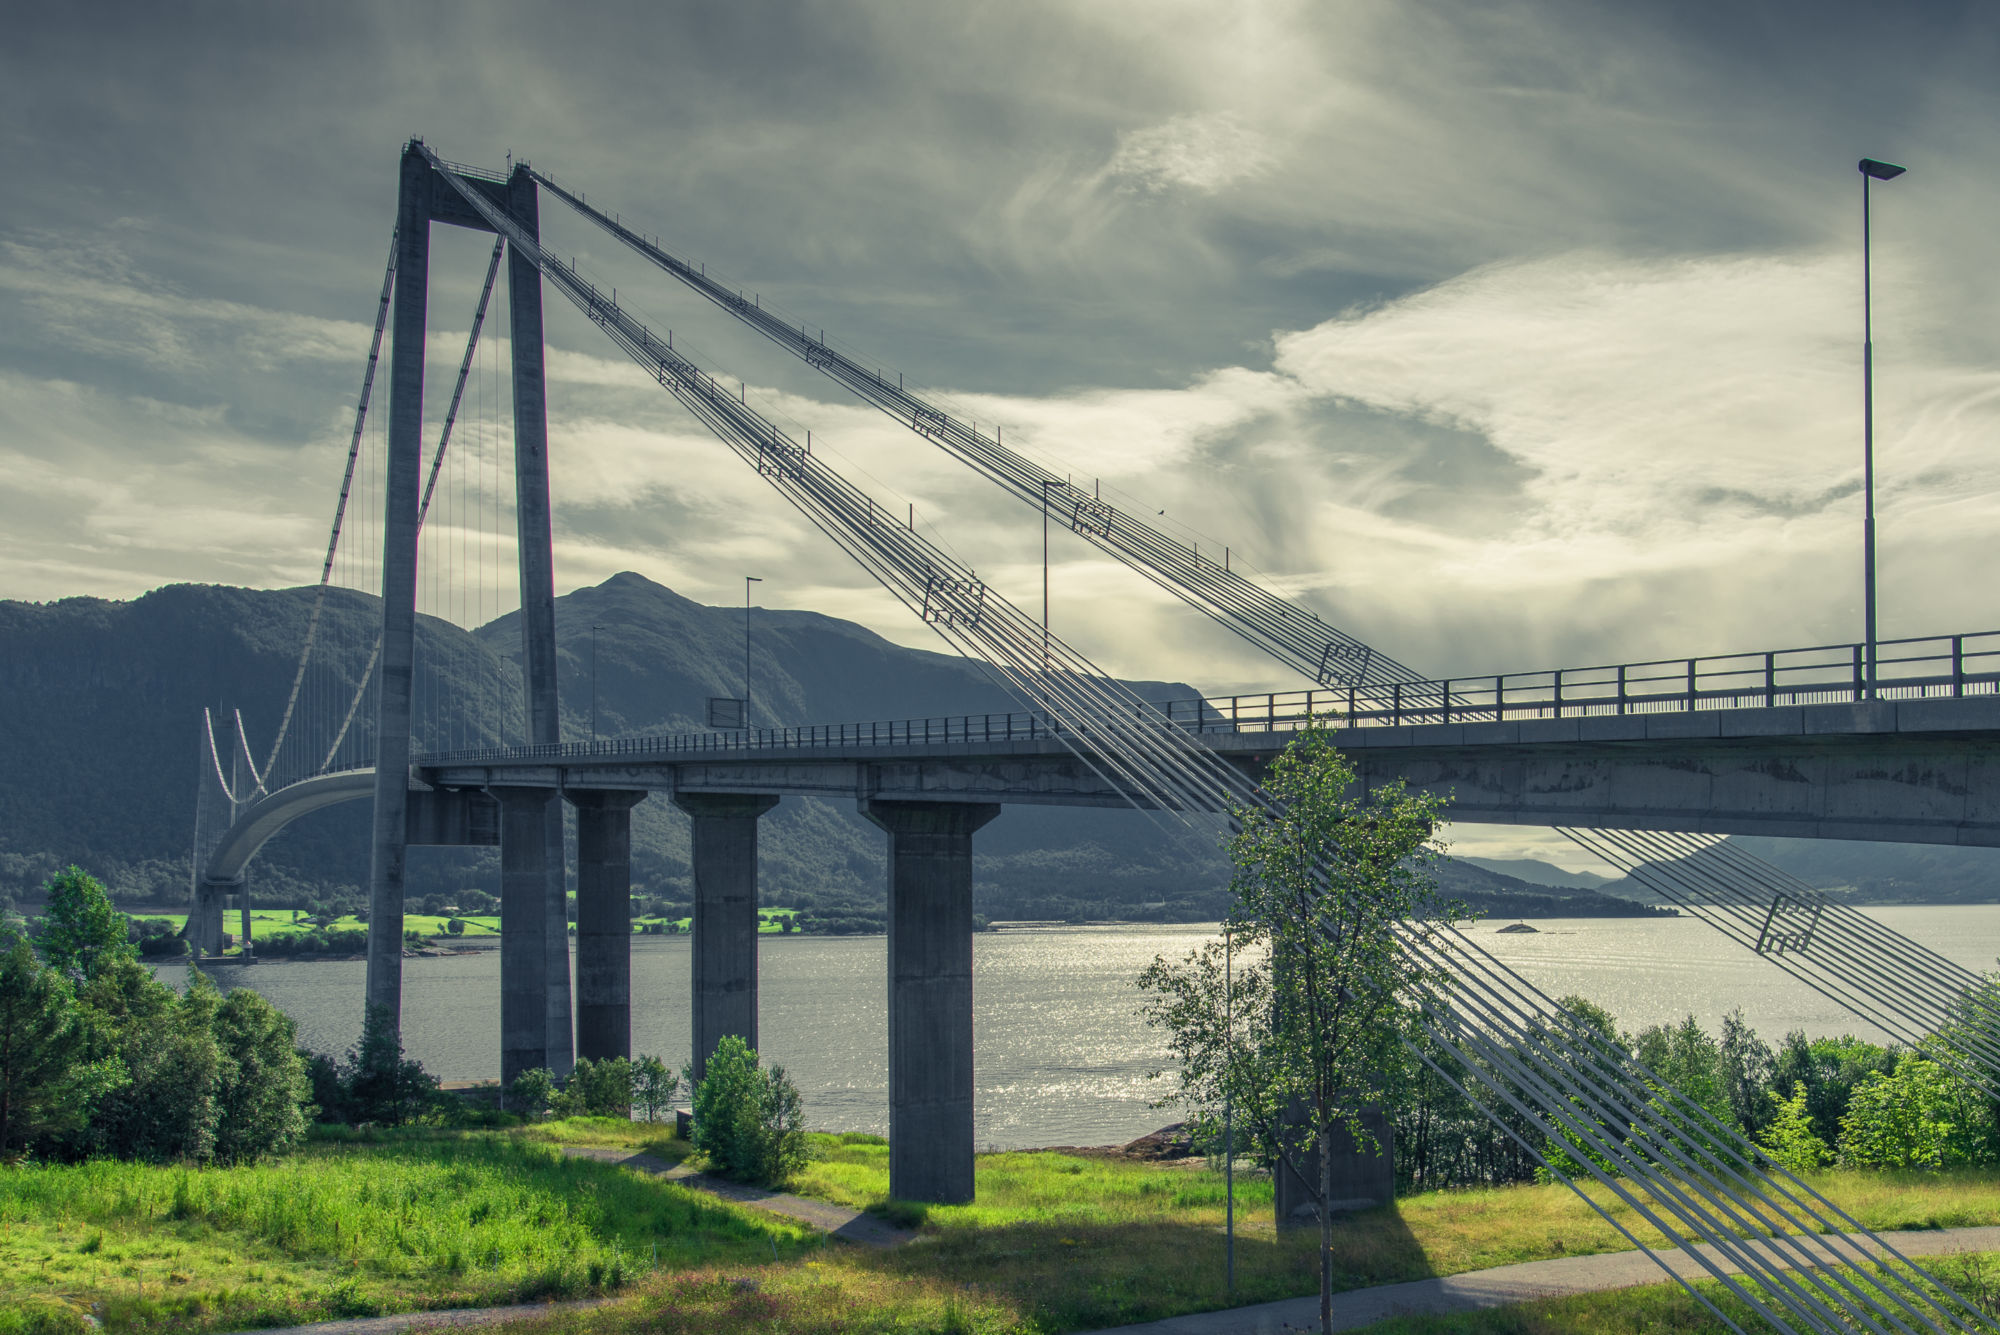 Bridge Bergsoya Hogset, Norway